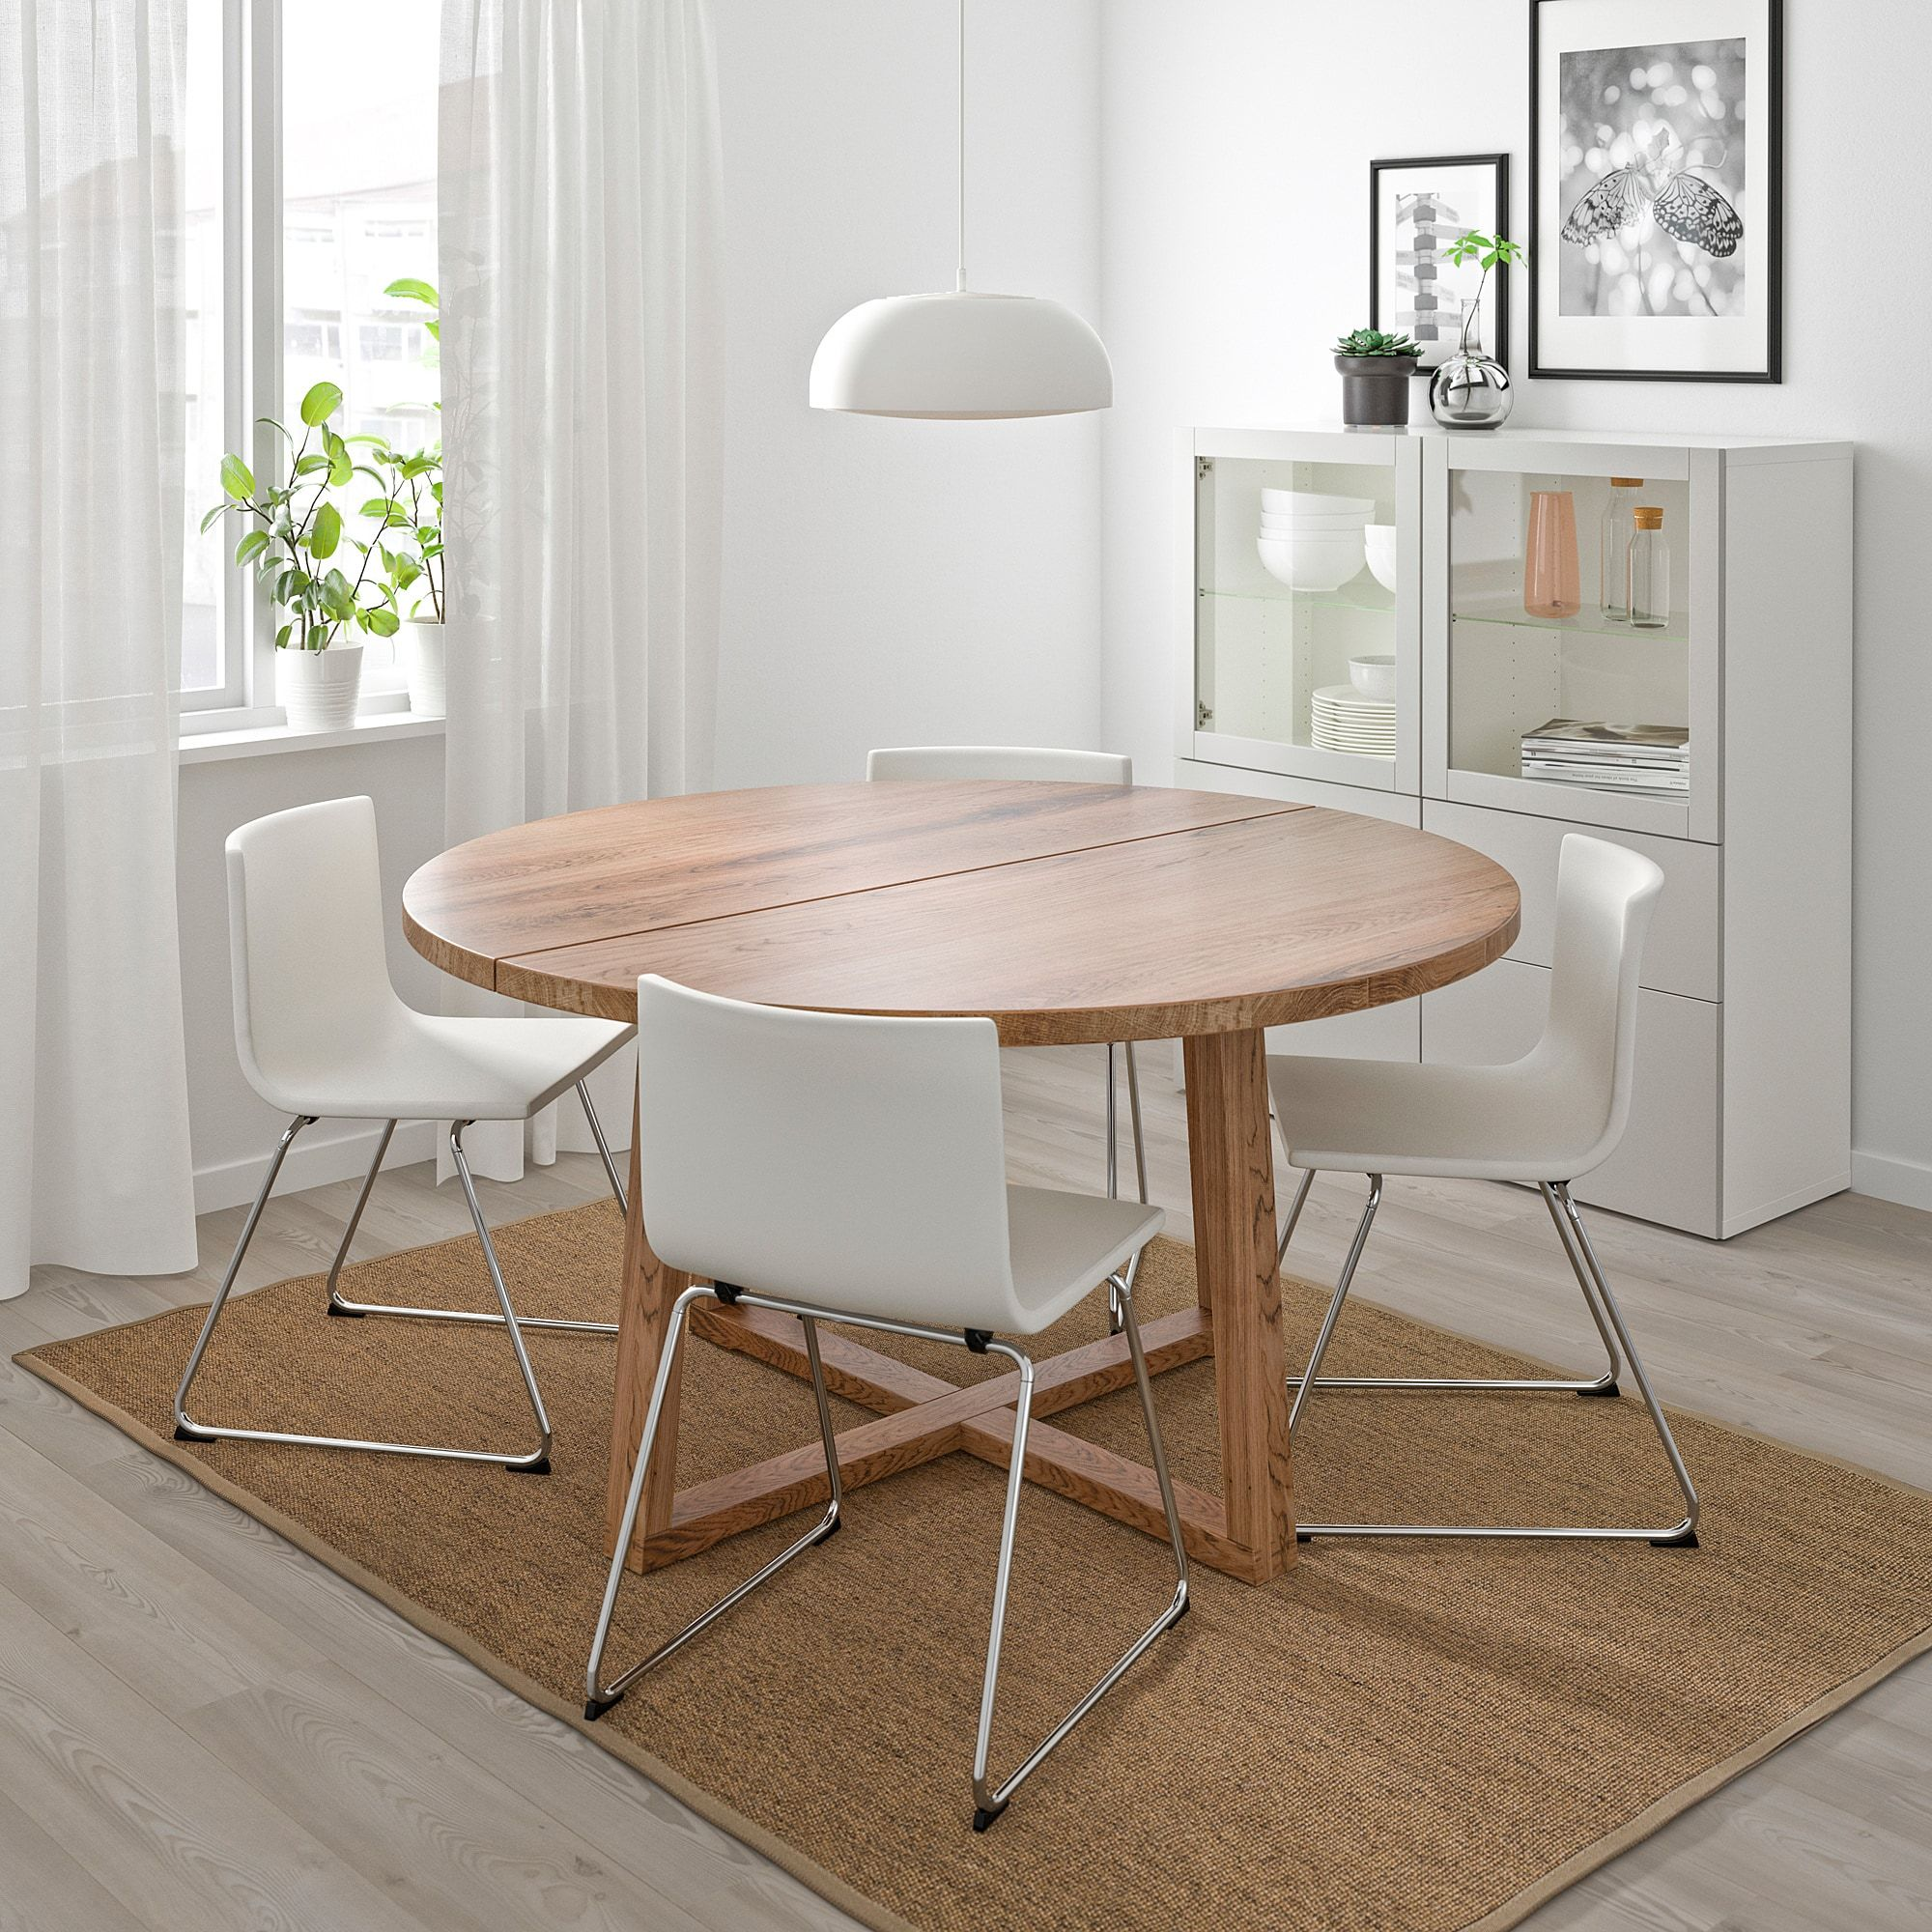 Morbylanga Table Oak Veneer Brown Stained Length 57 1 8 Ikea Ikea Round Dining Table Expandable Dining Table Round Dining Table [ 2000 x 2000 Pixel ]